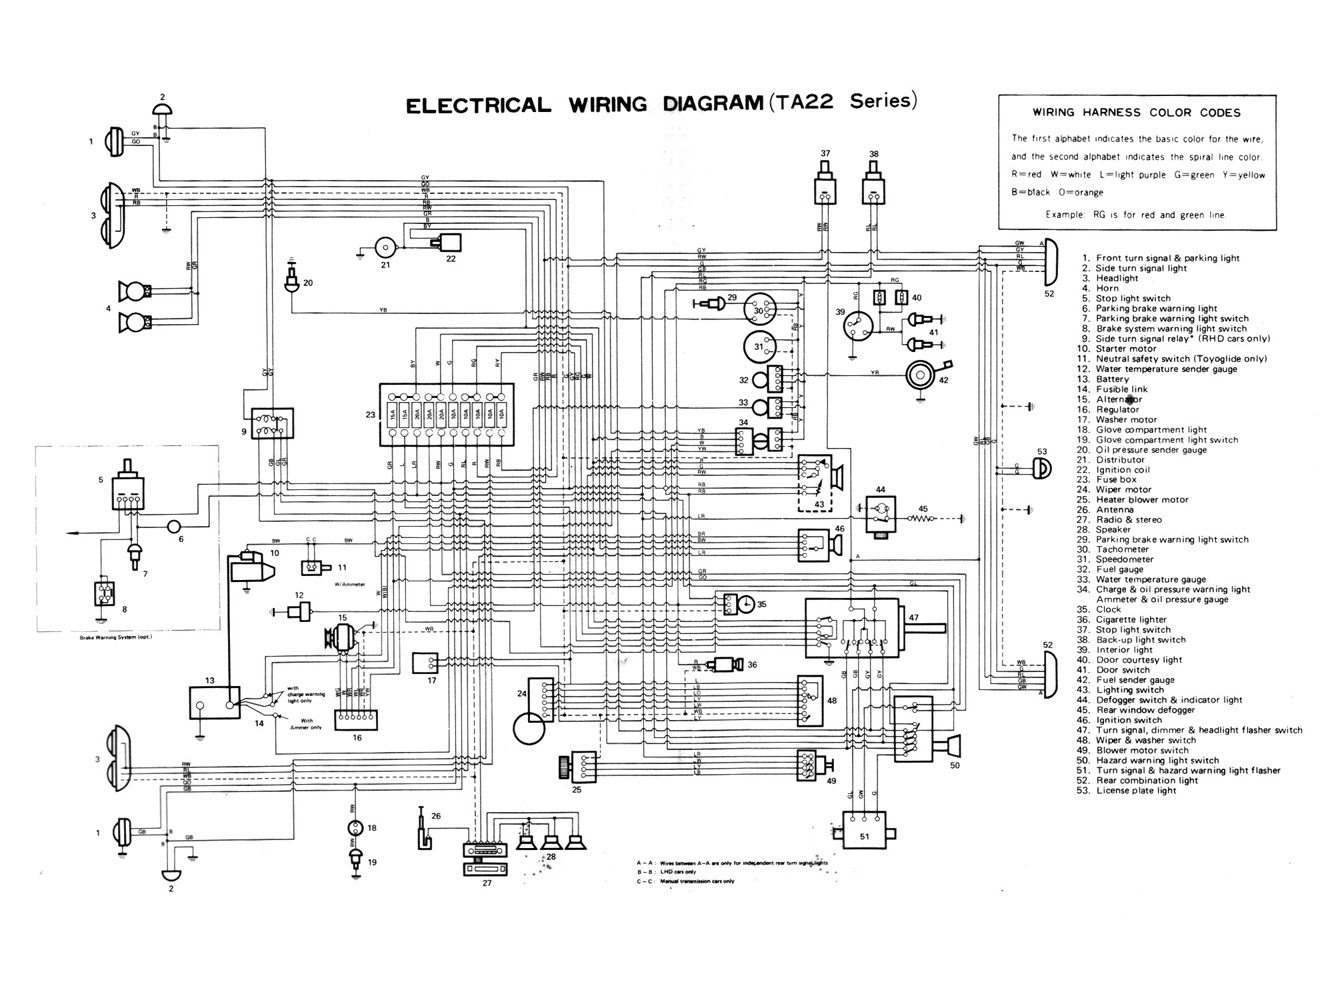 09 24 Electrical Wiring Diagram (TA22 Series) toyota celica service manual chassis 1971 page 09 24 (100dpi toyota celica wiring diagram at bayanpartner.co